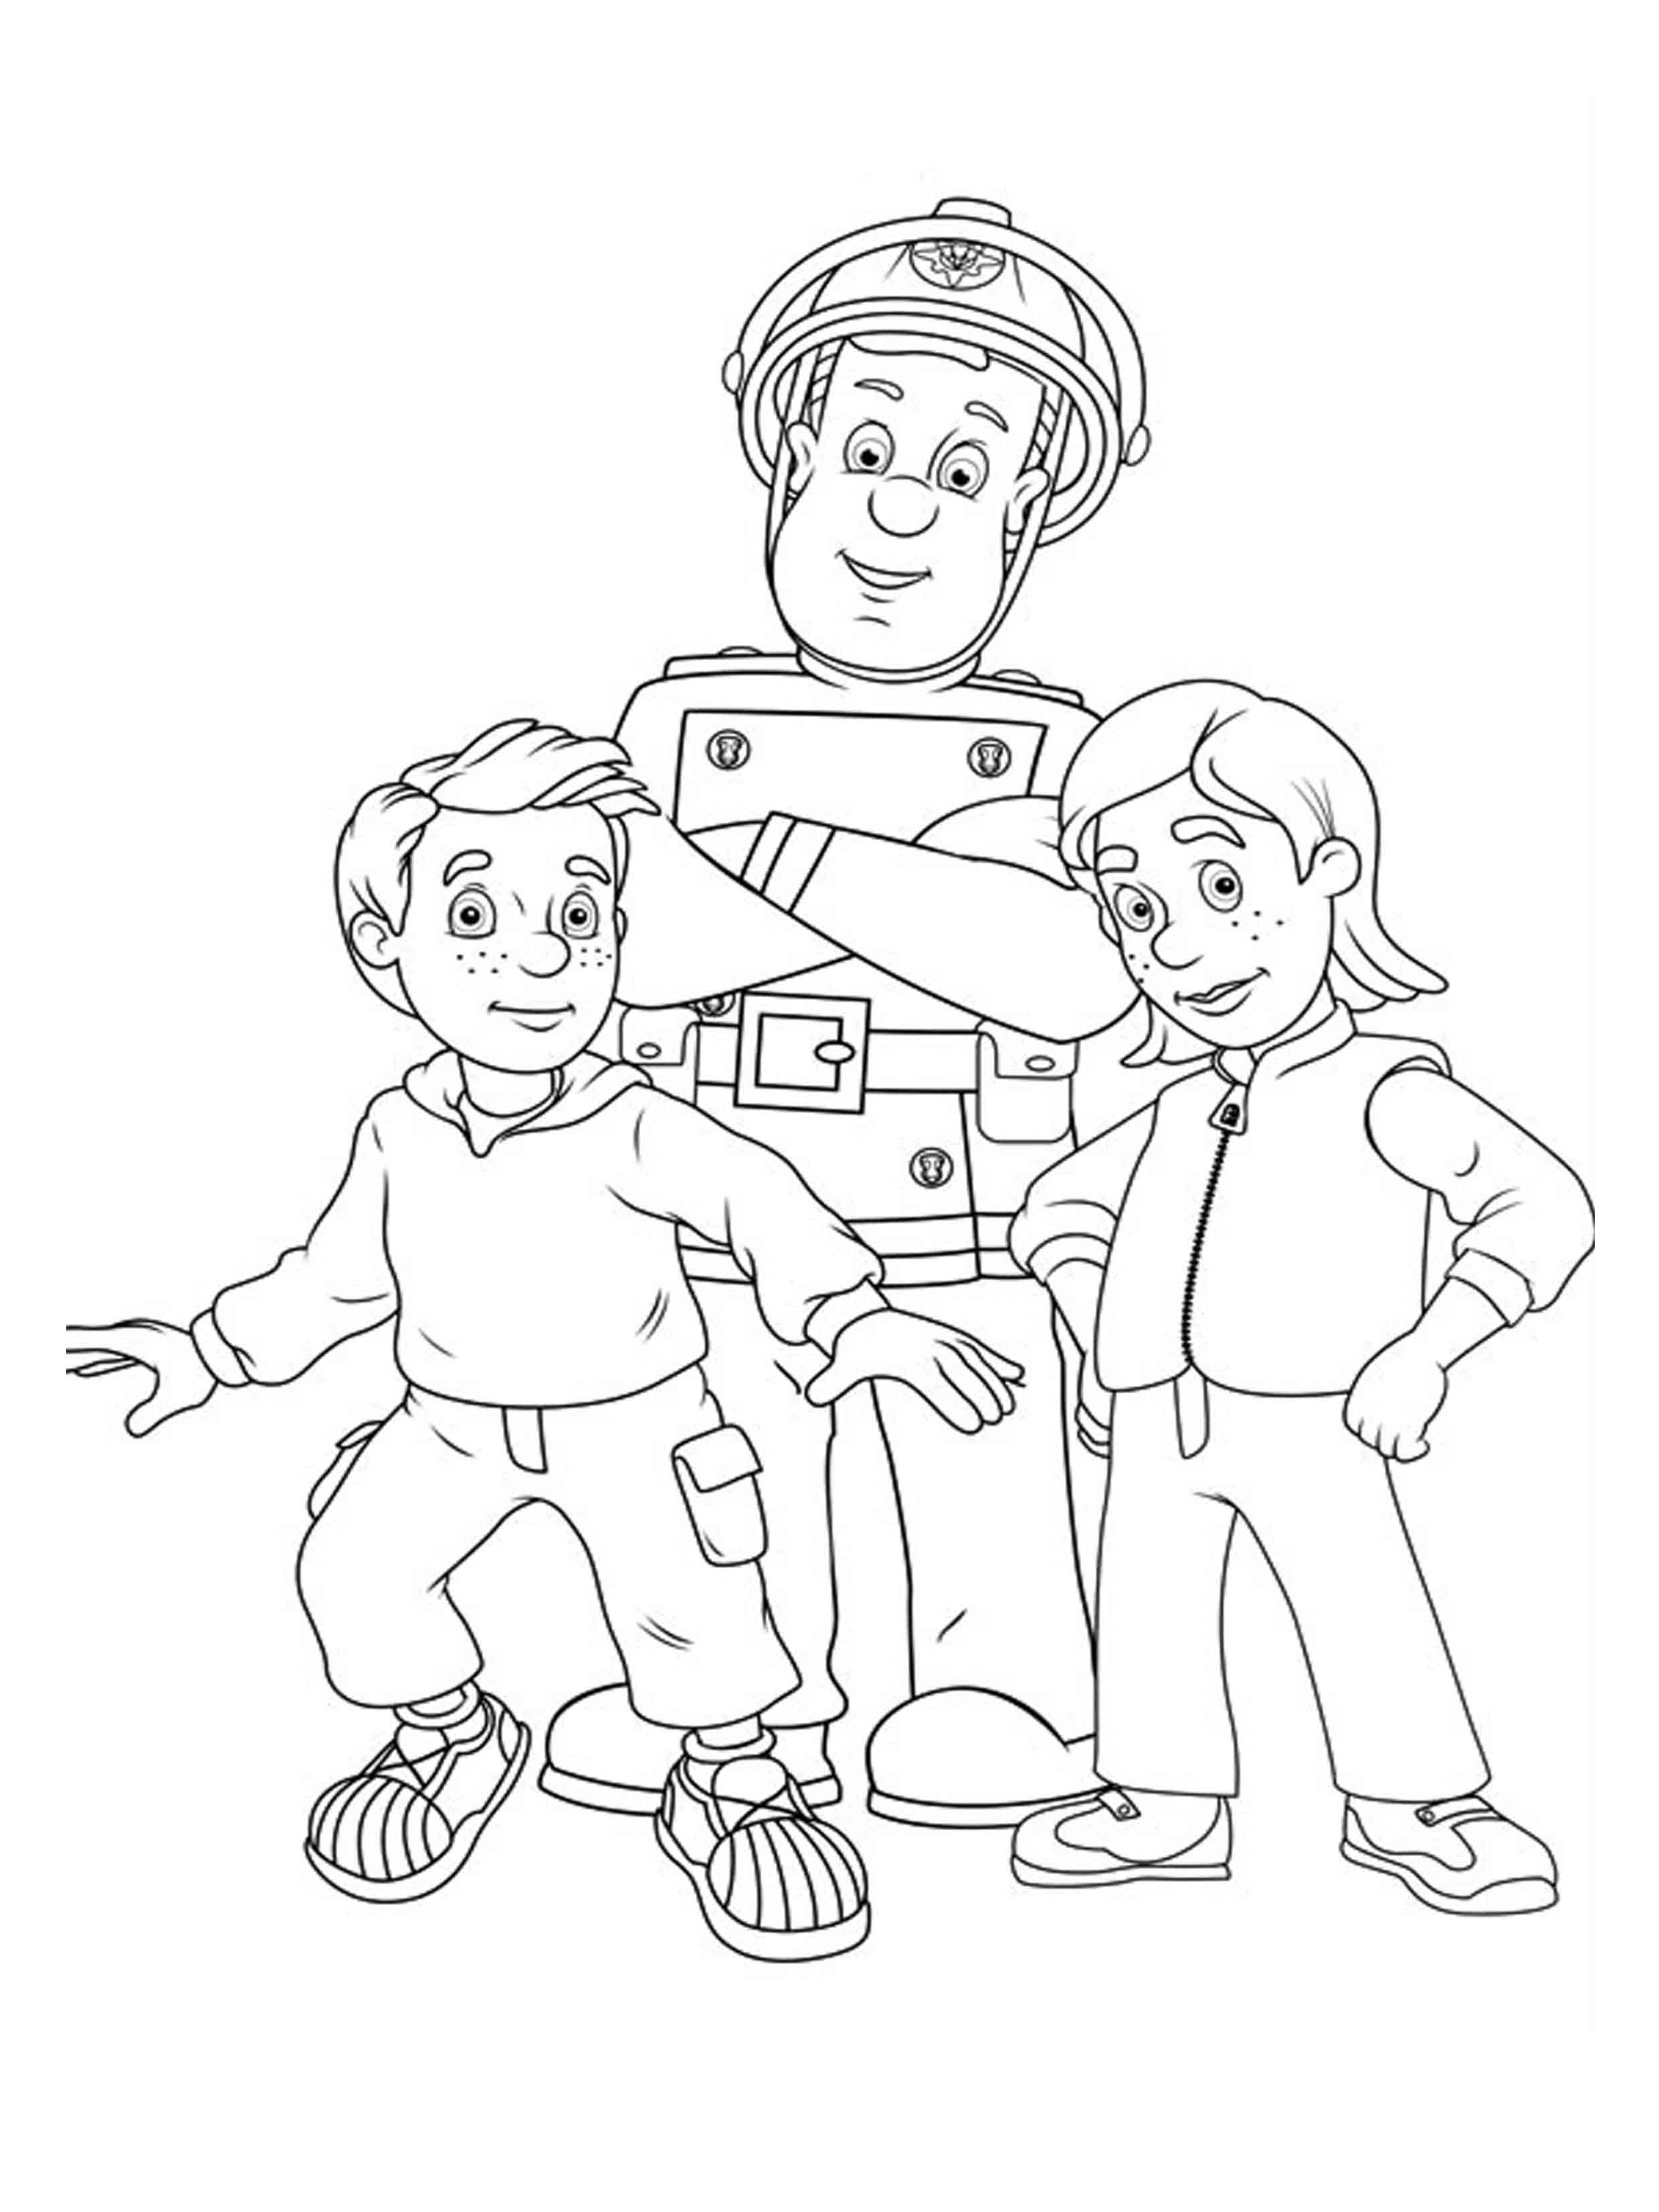 coloring book pages fireman - photo#42